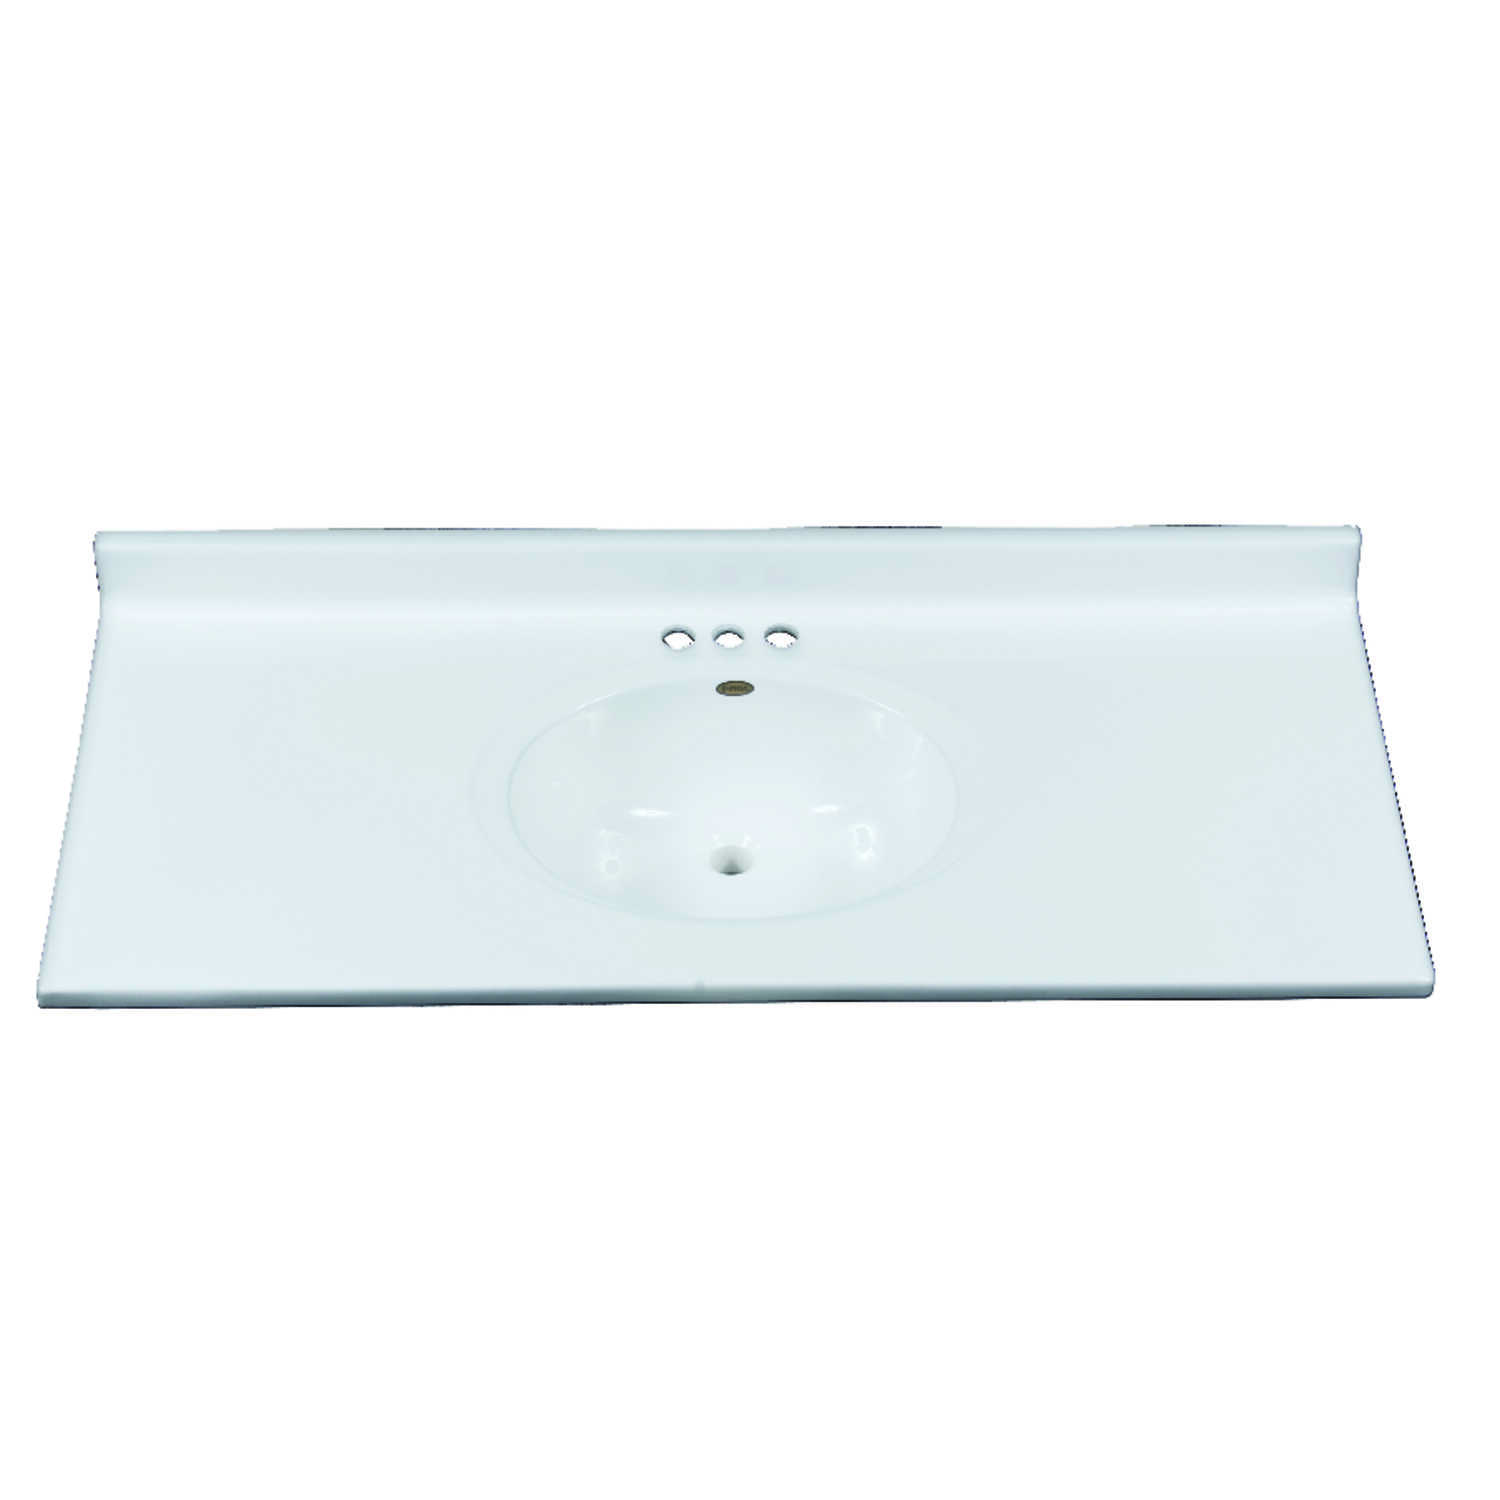 Imperial Marble  Single  Gloss  Solid White  Vanity Top  49 in. W x 22 in. D